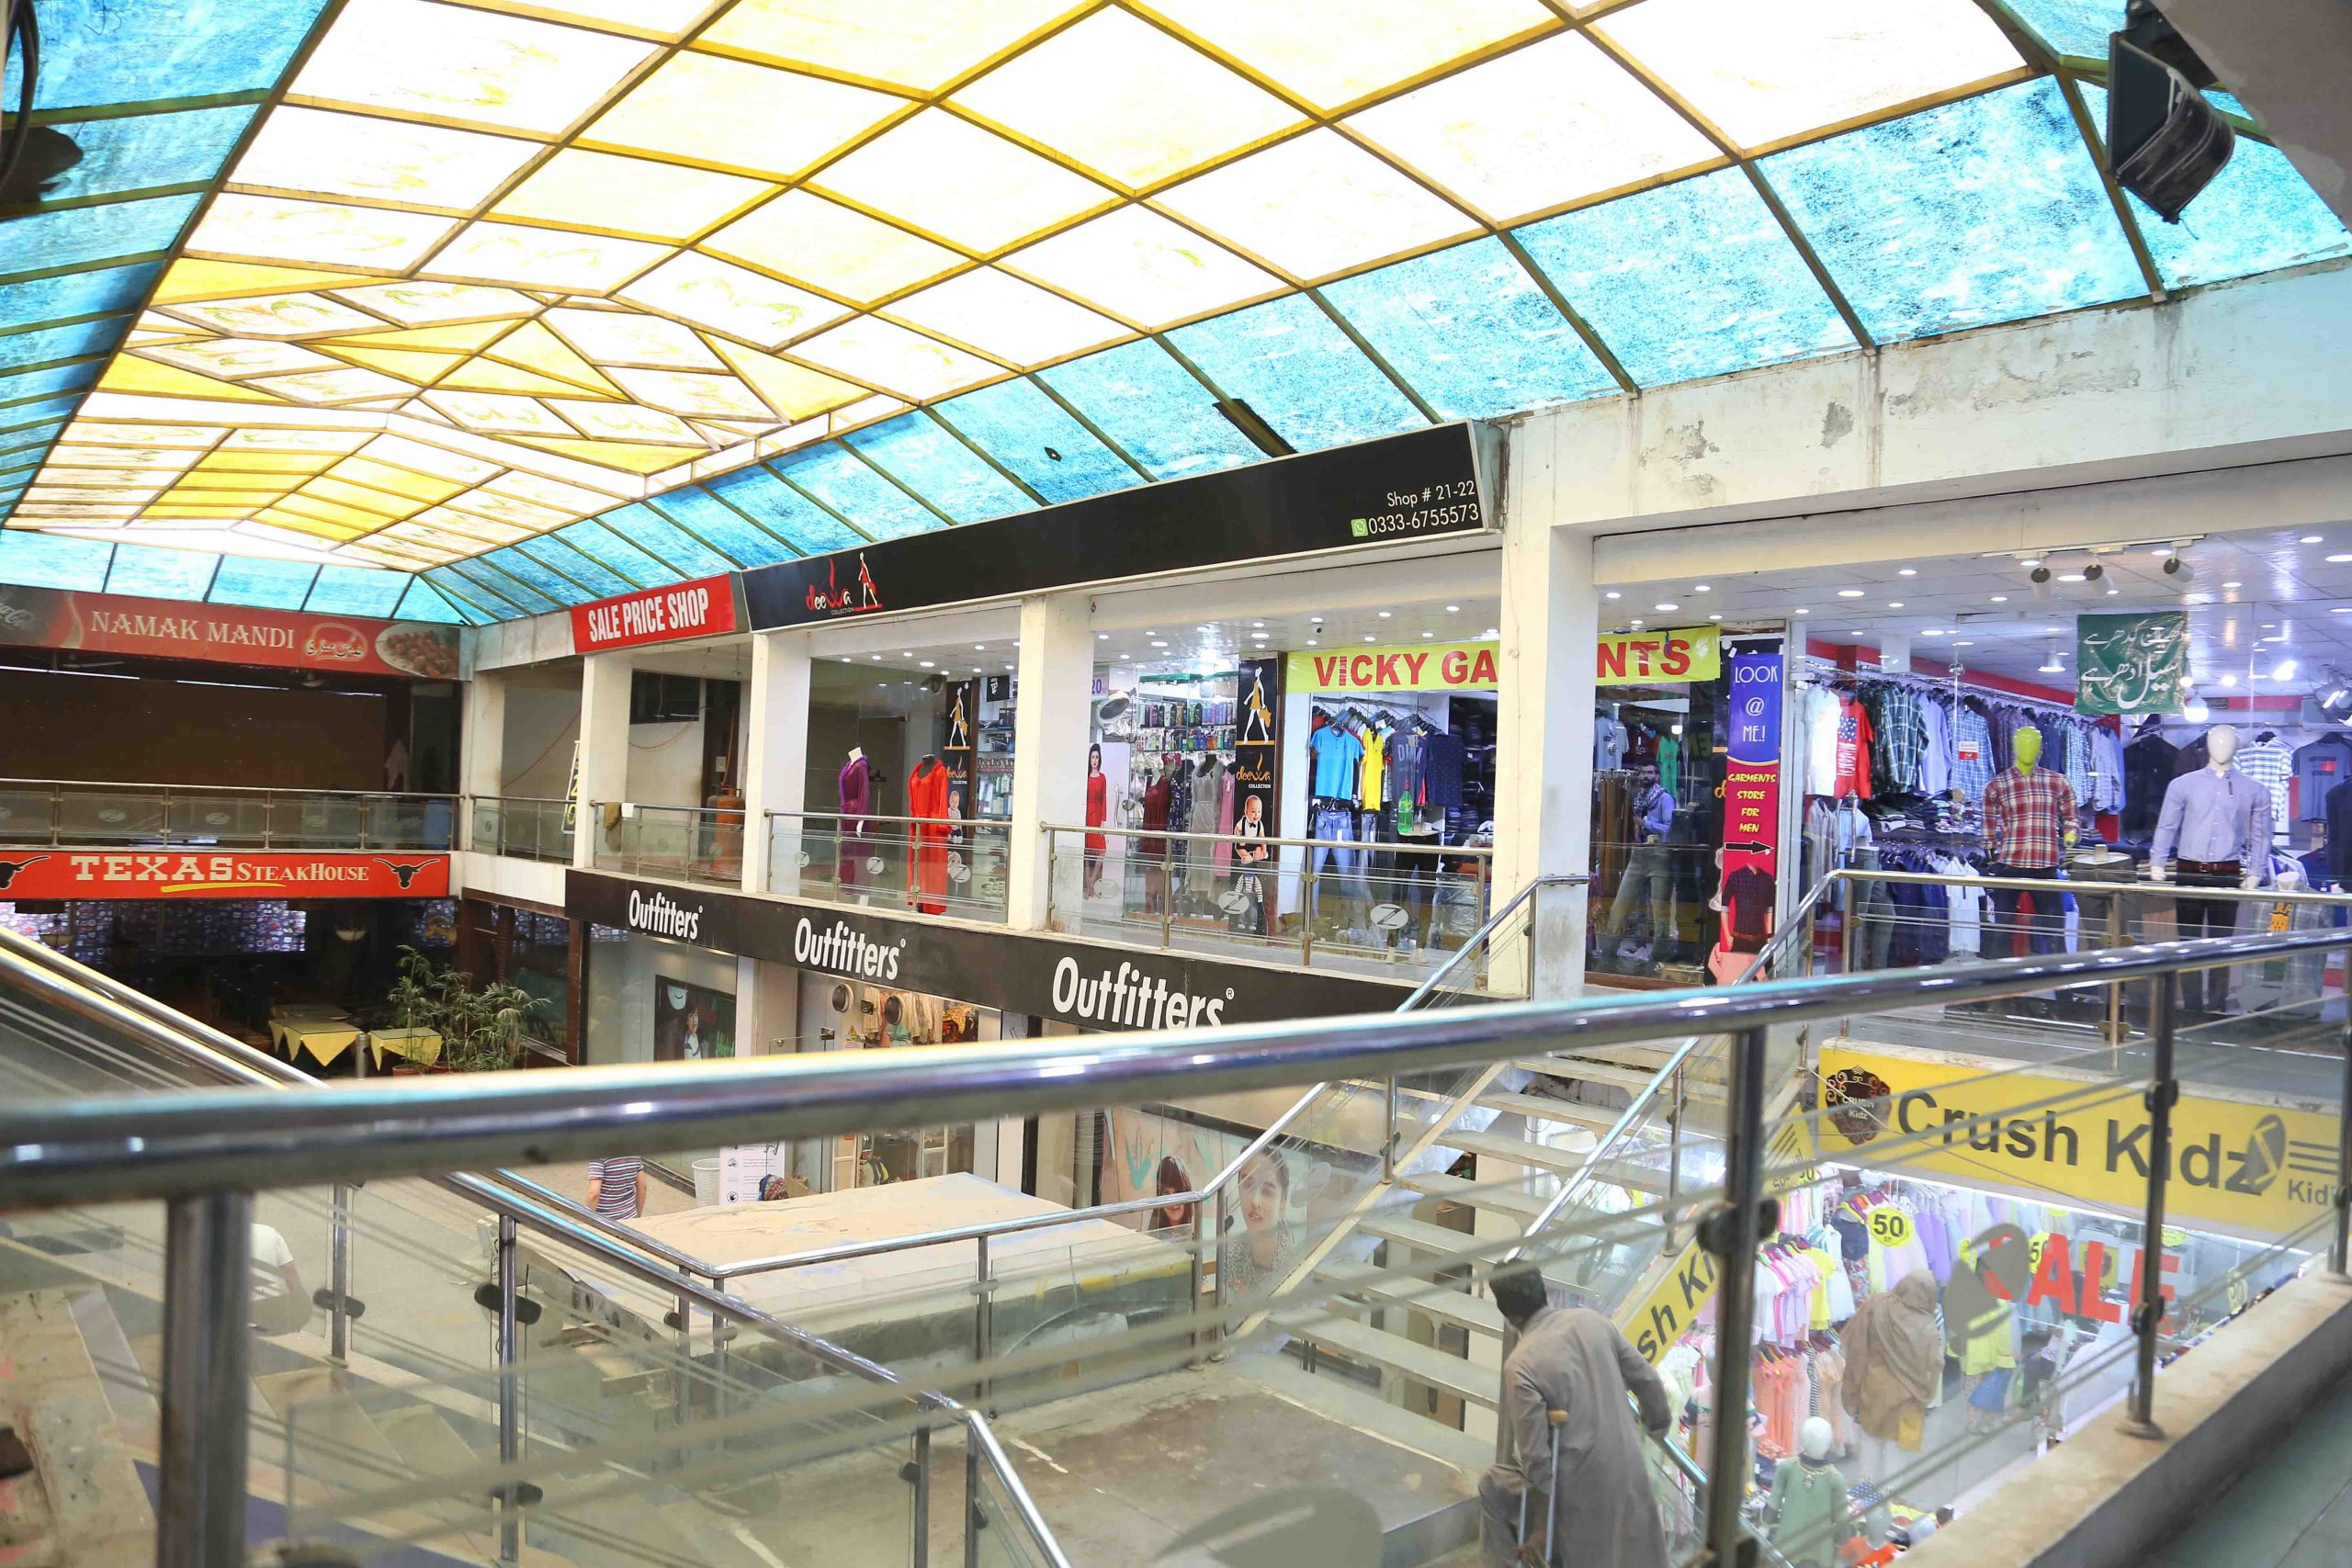 Zarkon Plaza 1 Saddar Rawalpindi Interior Views - FAH33M (5) - Q-L0-BO